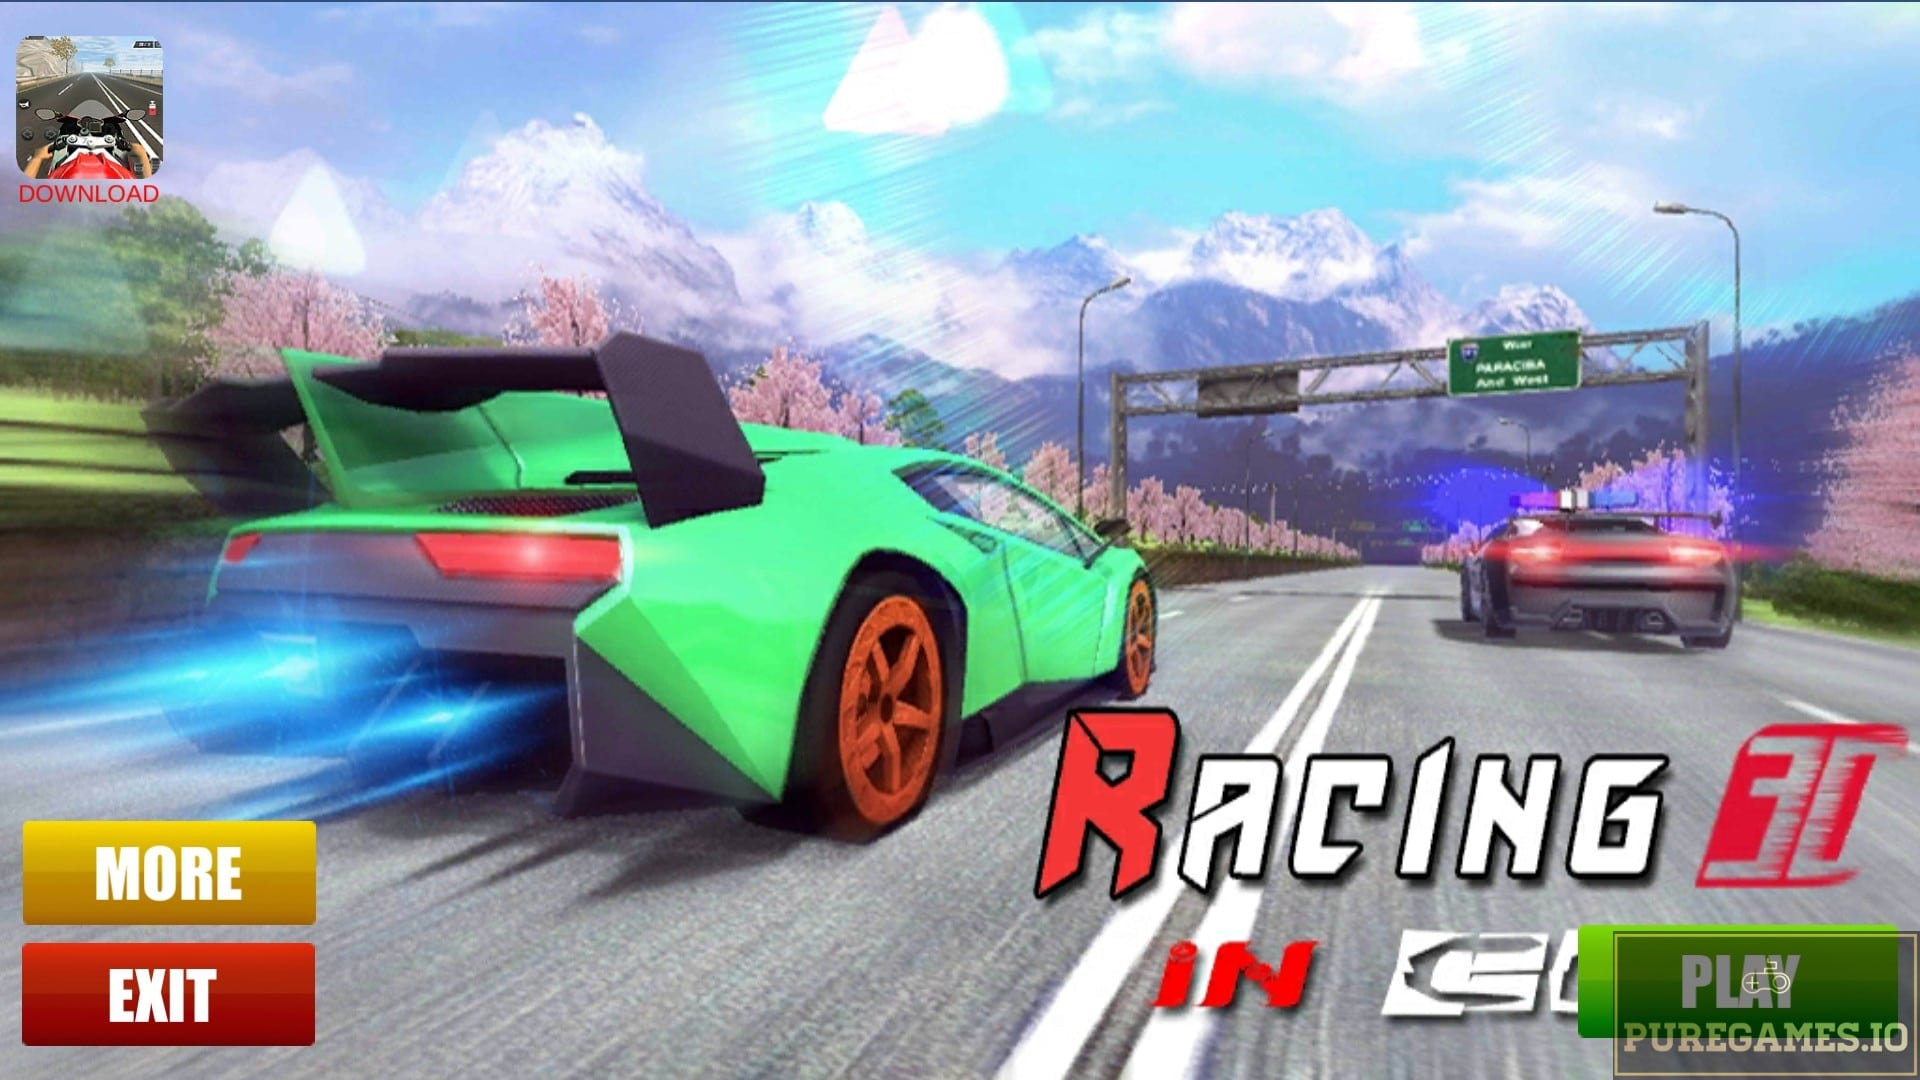 Download Racing In Car 3D APK - For Android 17